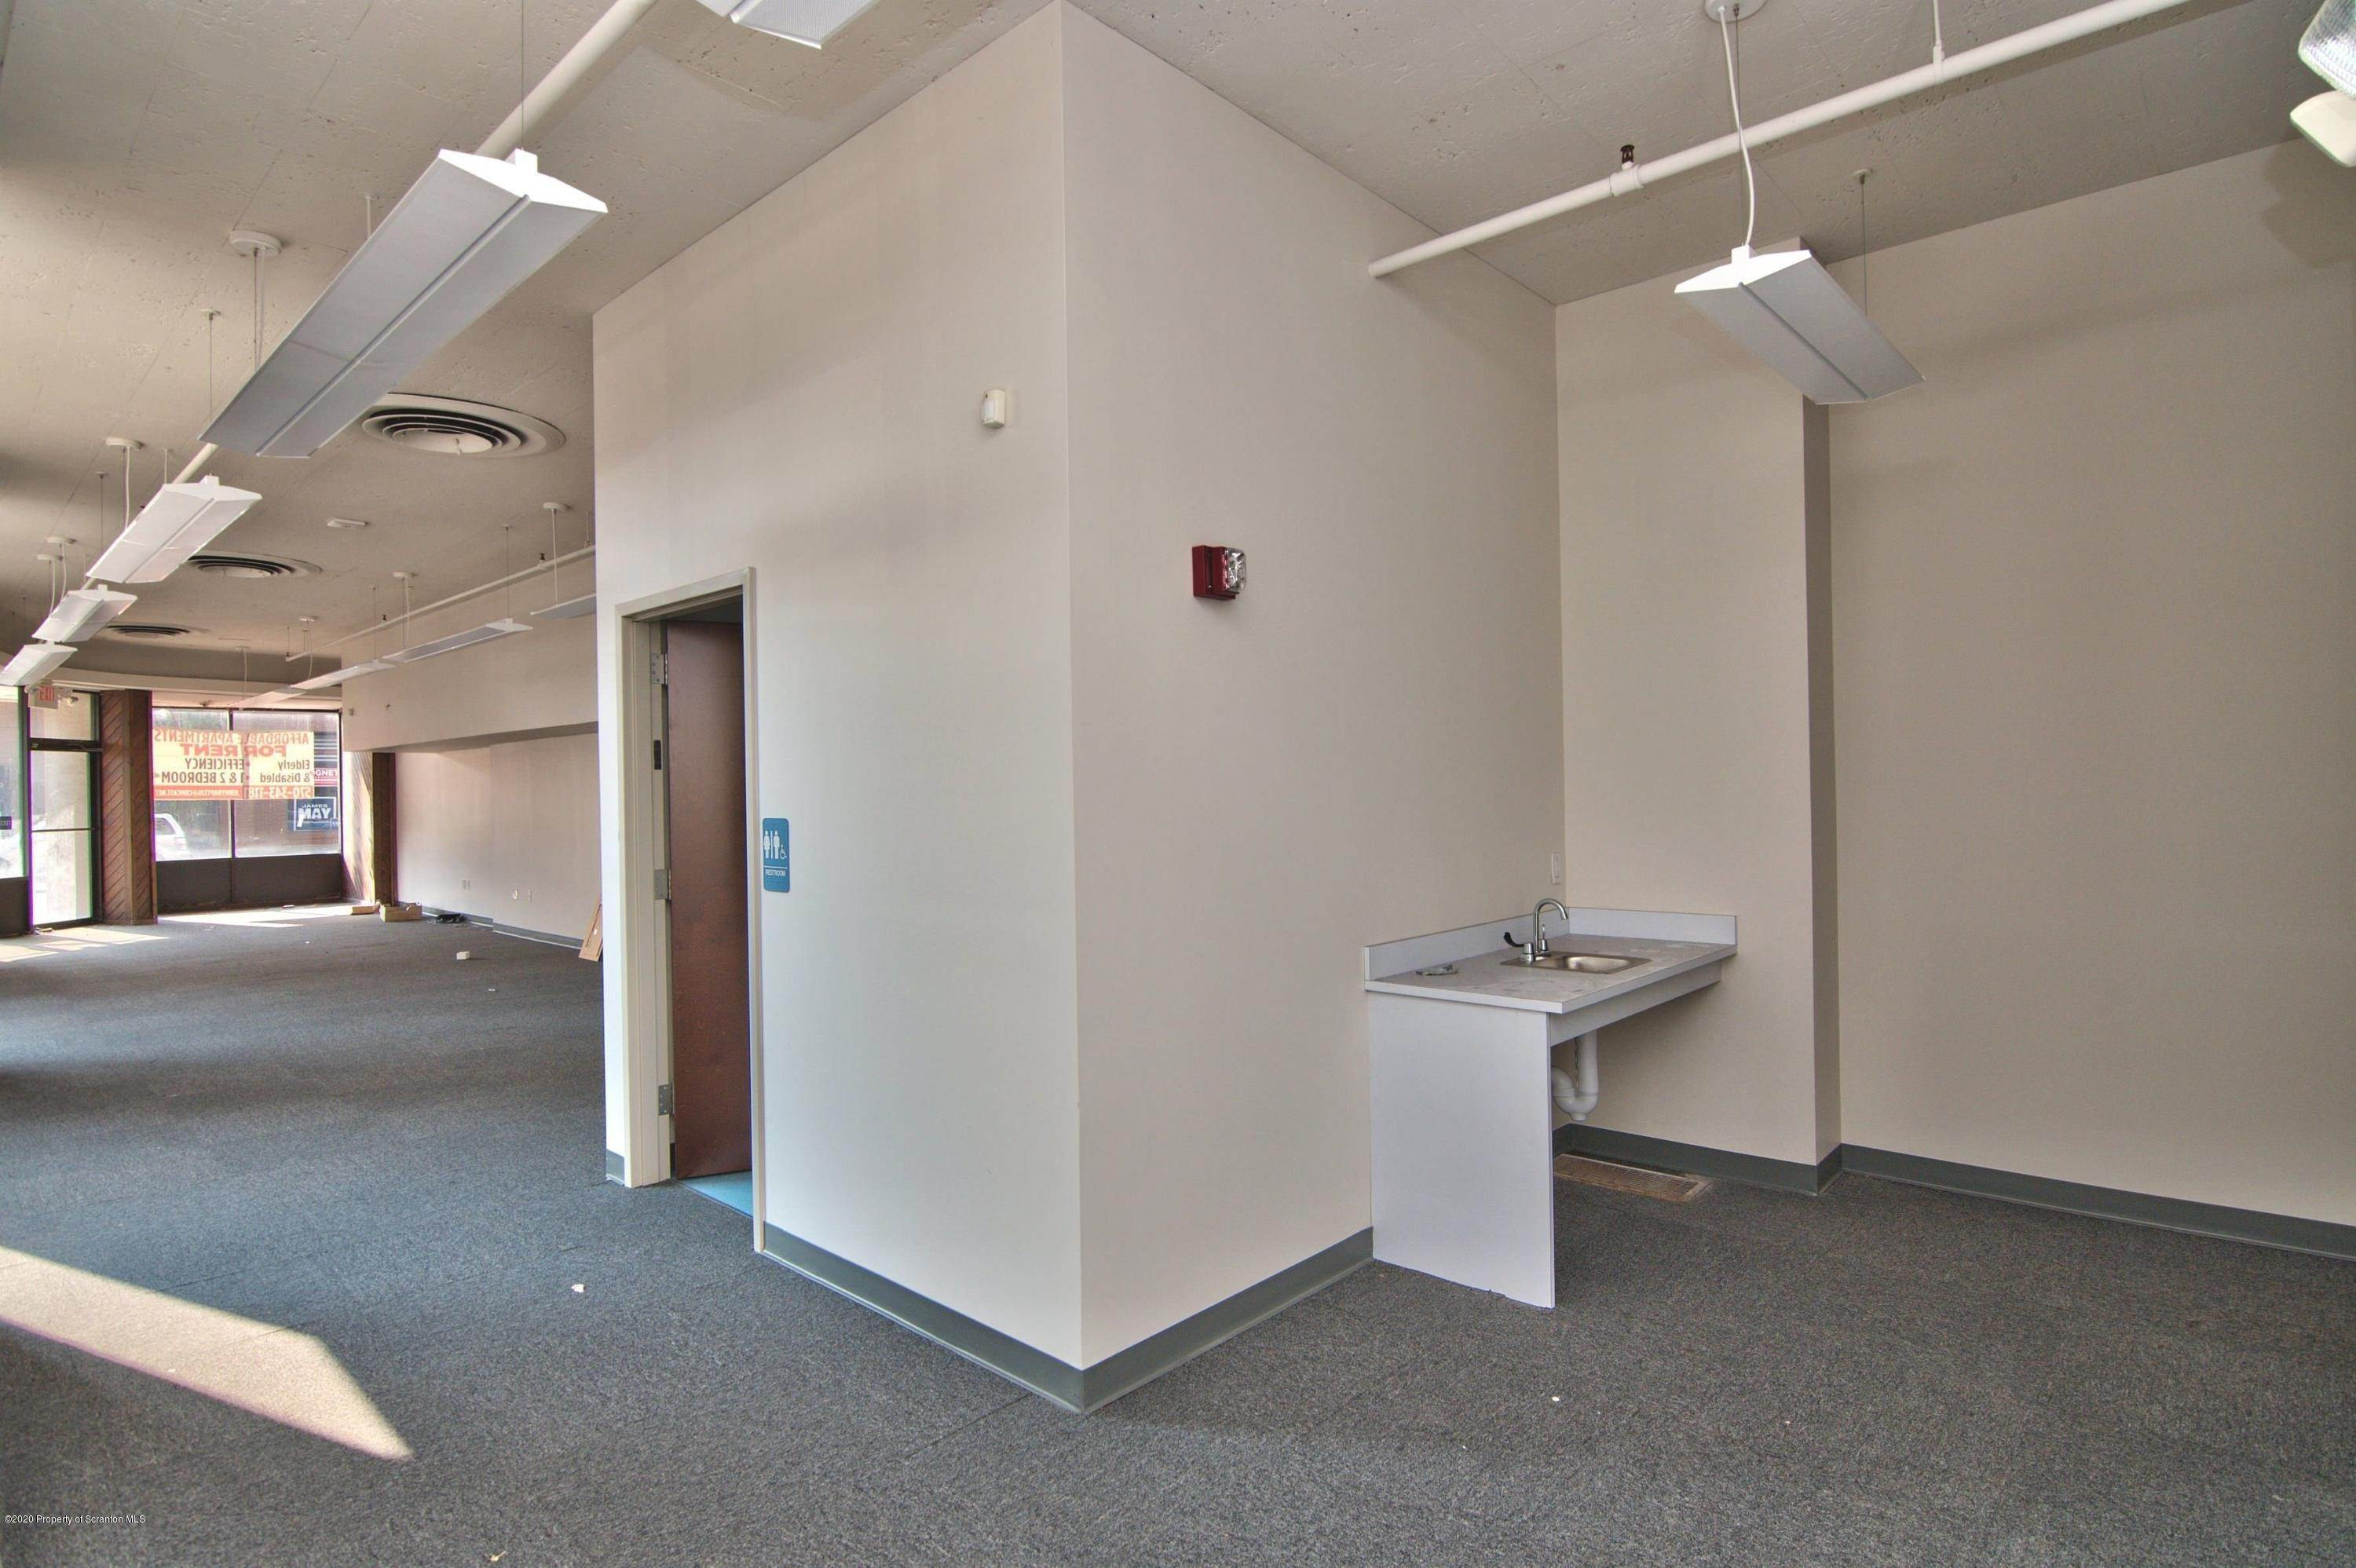 9. Commercial for Rent at 139 Wyoming Ave Scranton, Pennsylvania 18503 United States